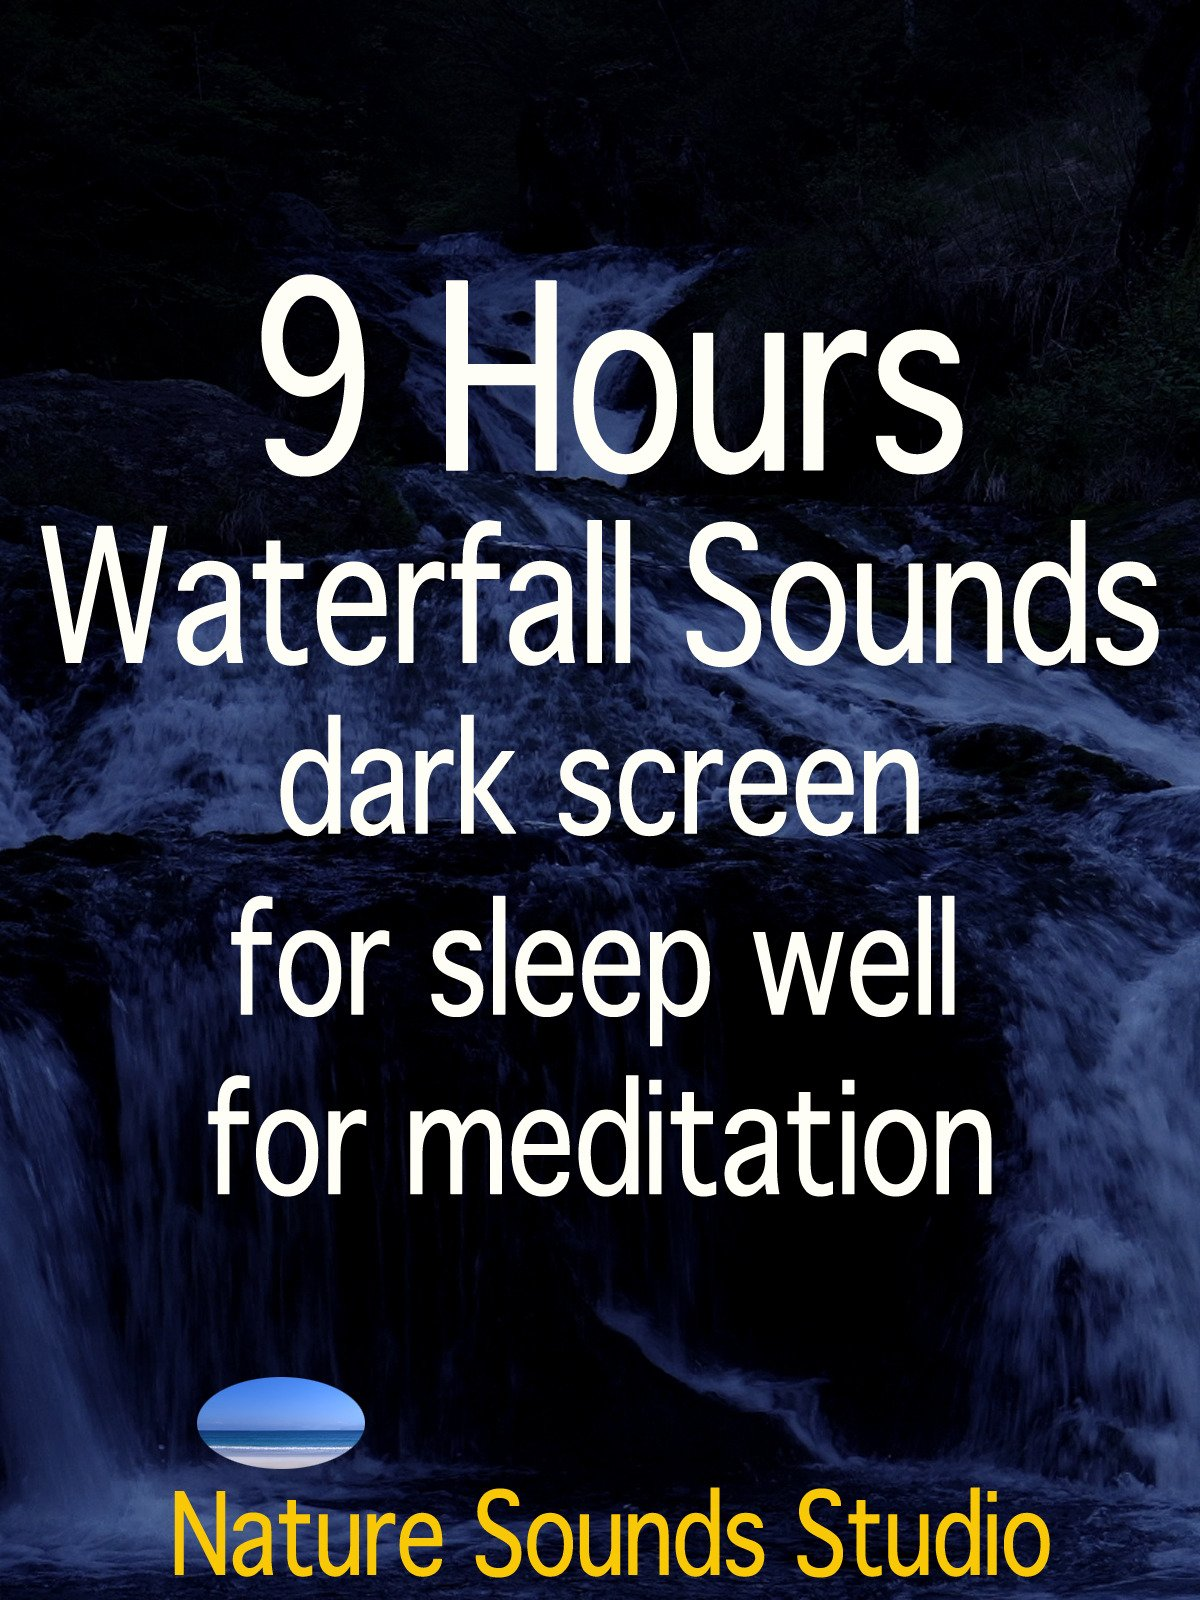 9 Hours Waterfall Sounds, dark screen, for sleep well, for meditation